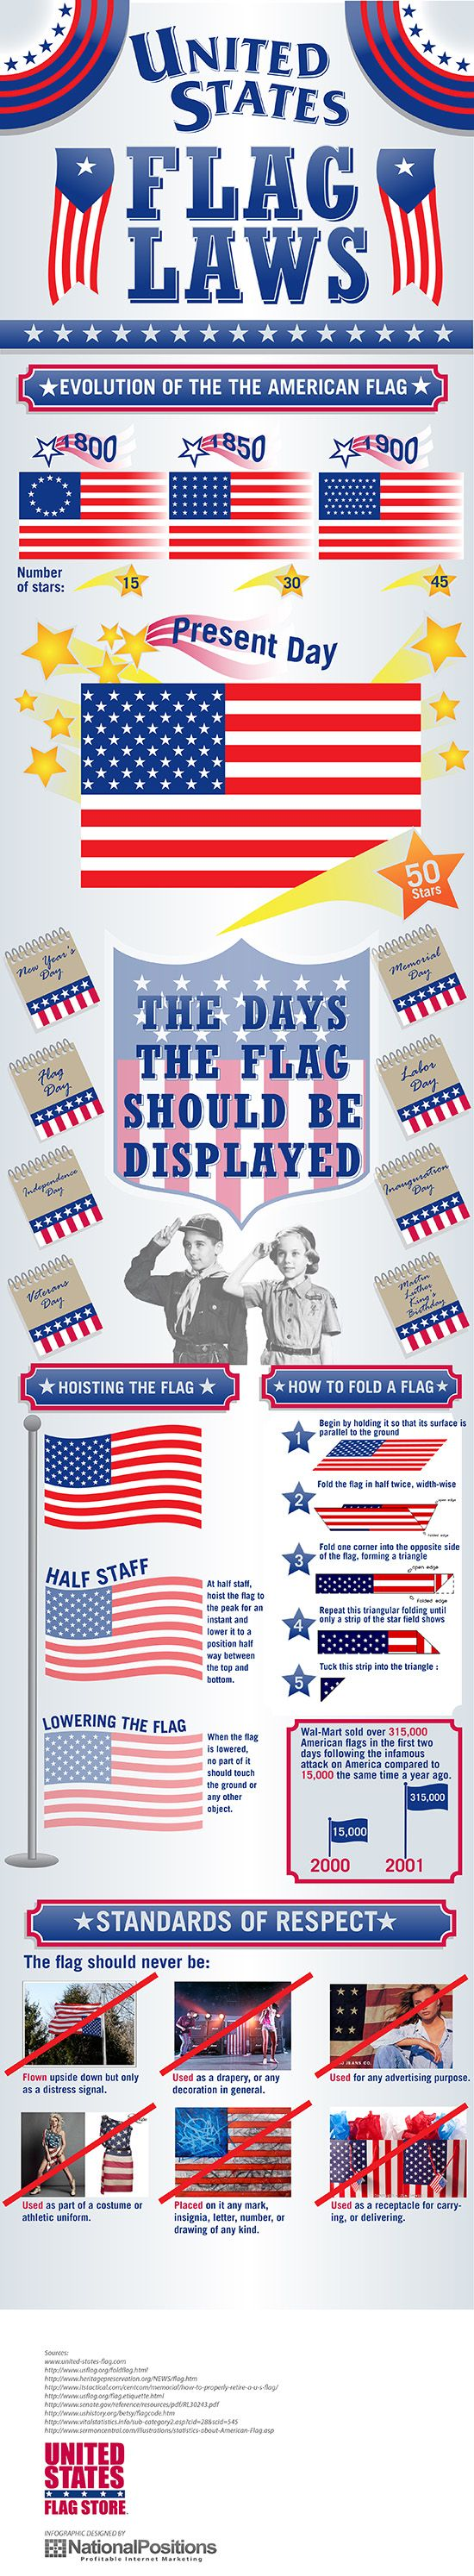 us flag rules for display